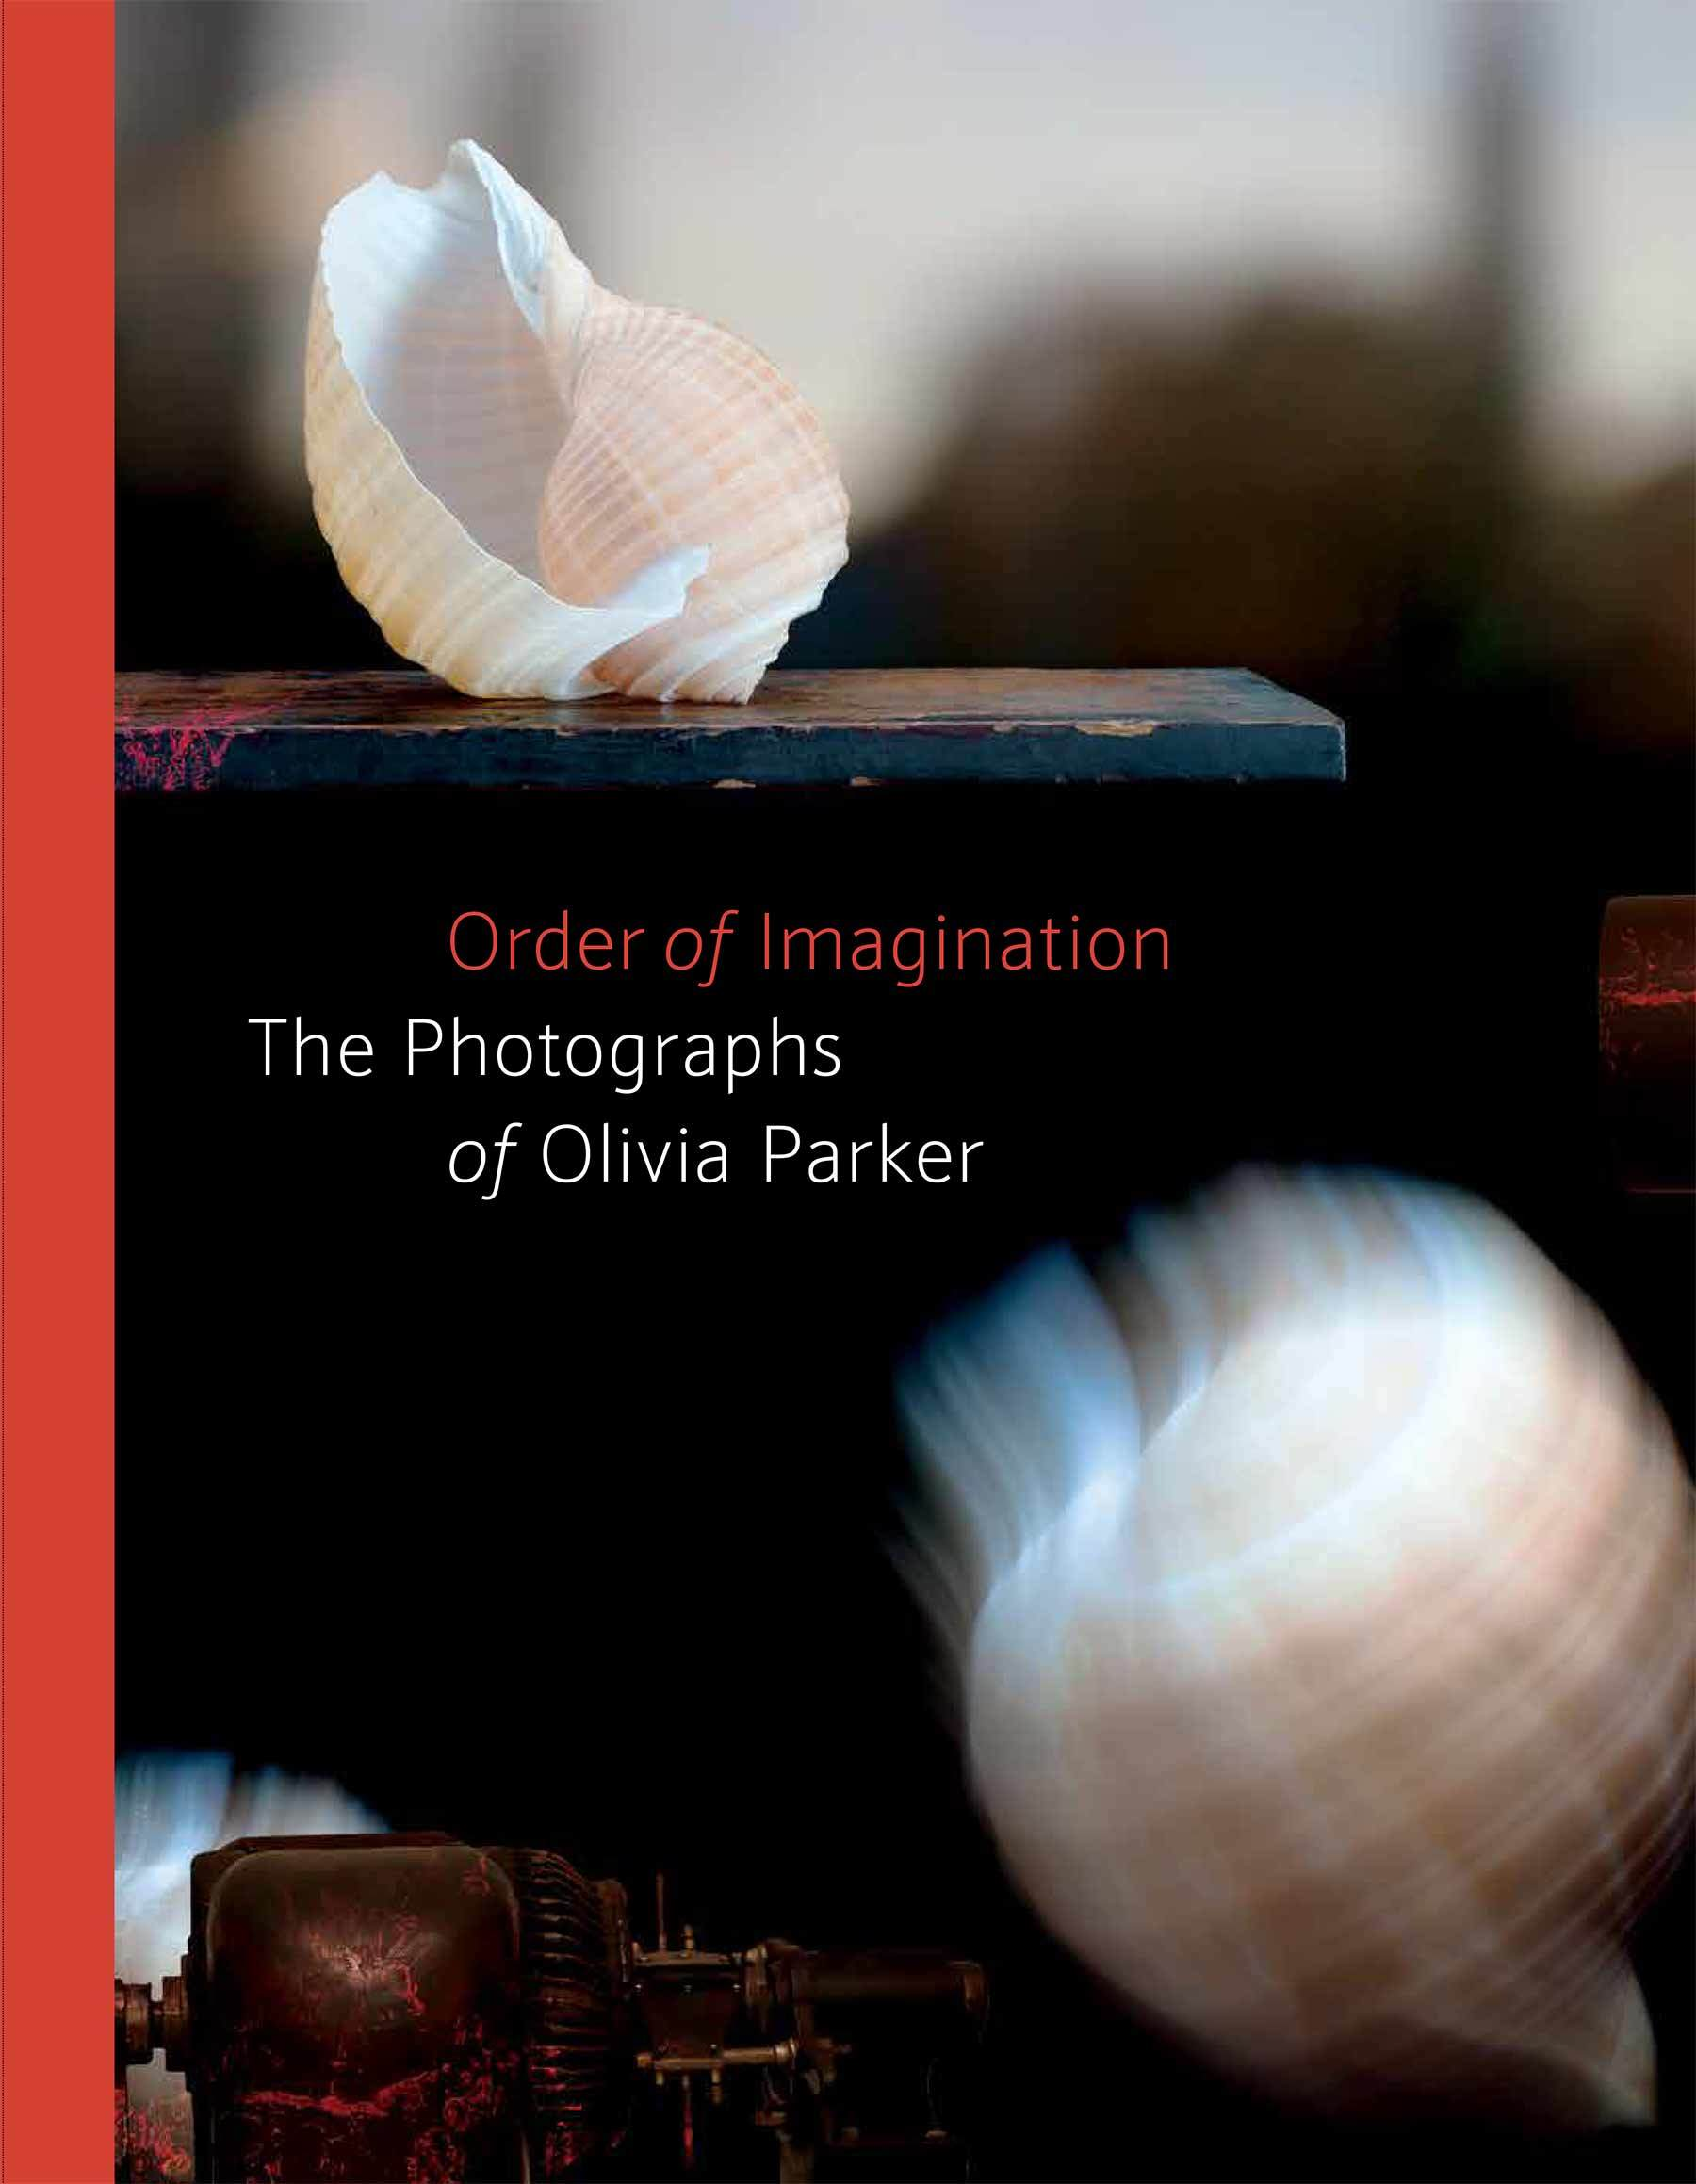 The cover of Order of Imagination: The Photographs of Olivia Parker